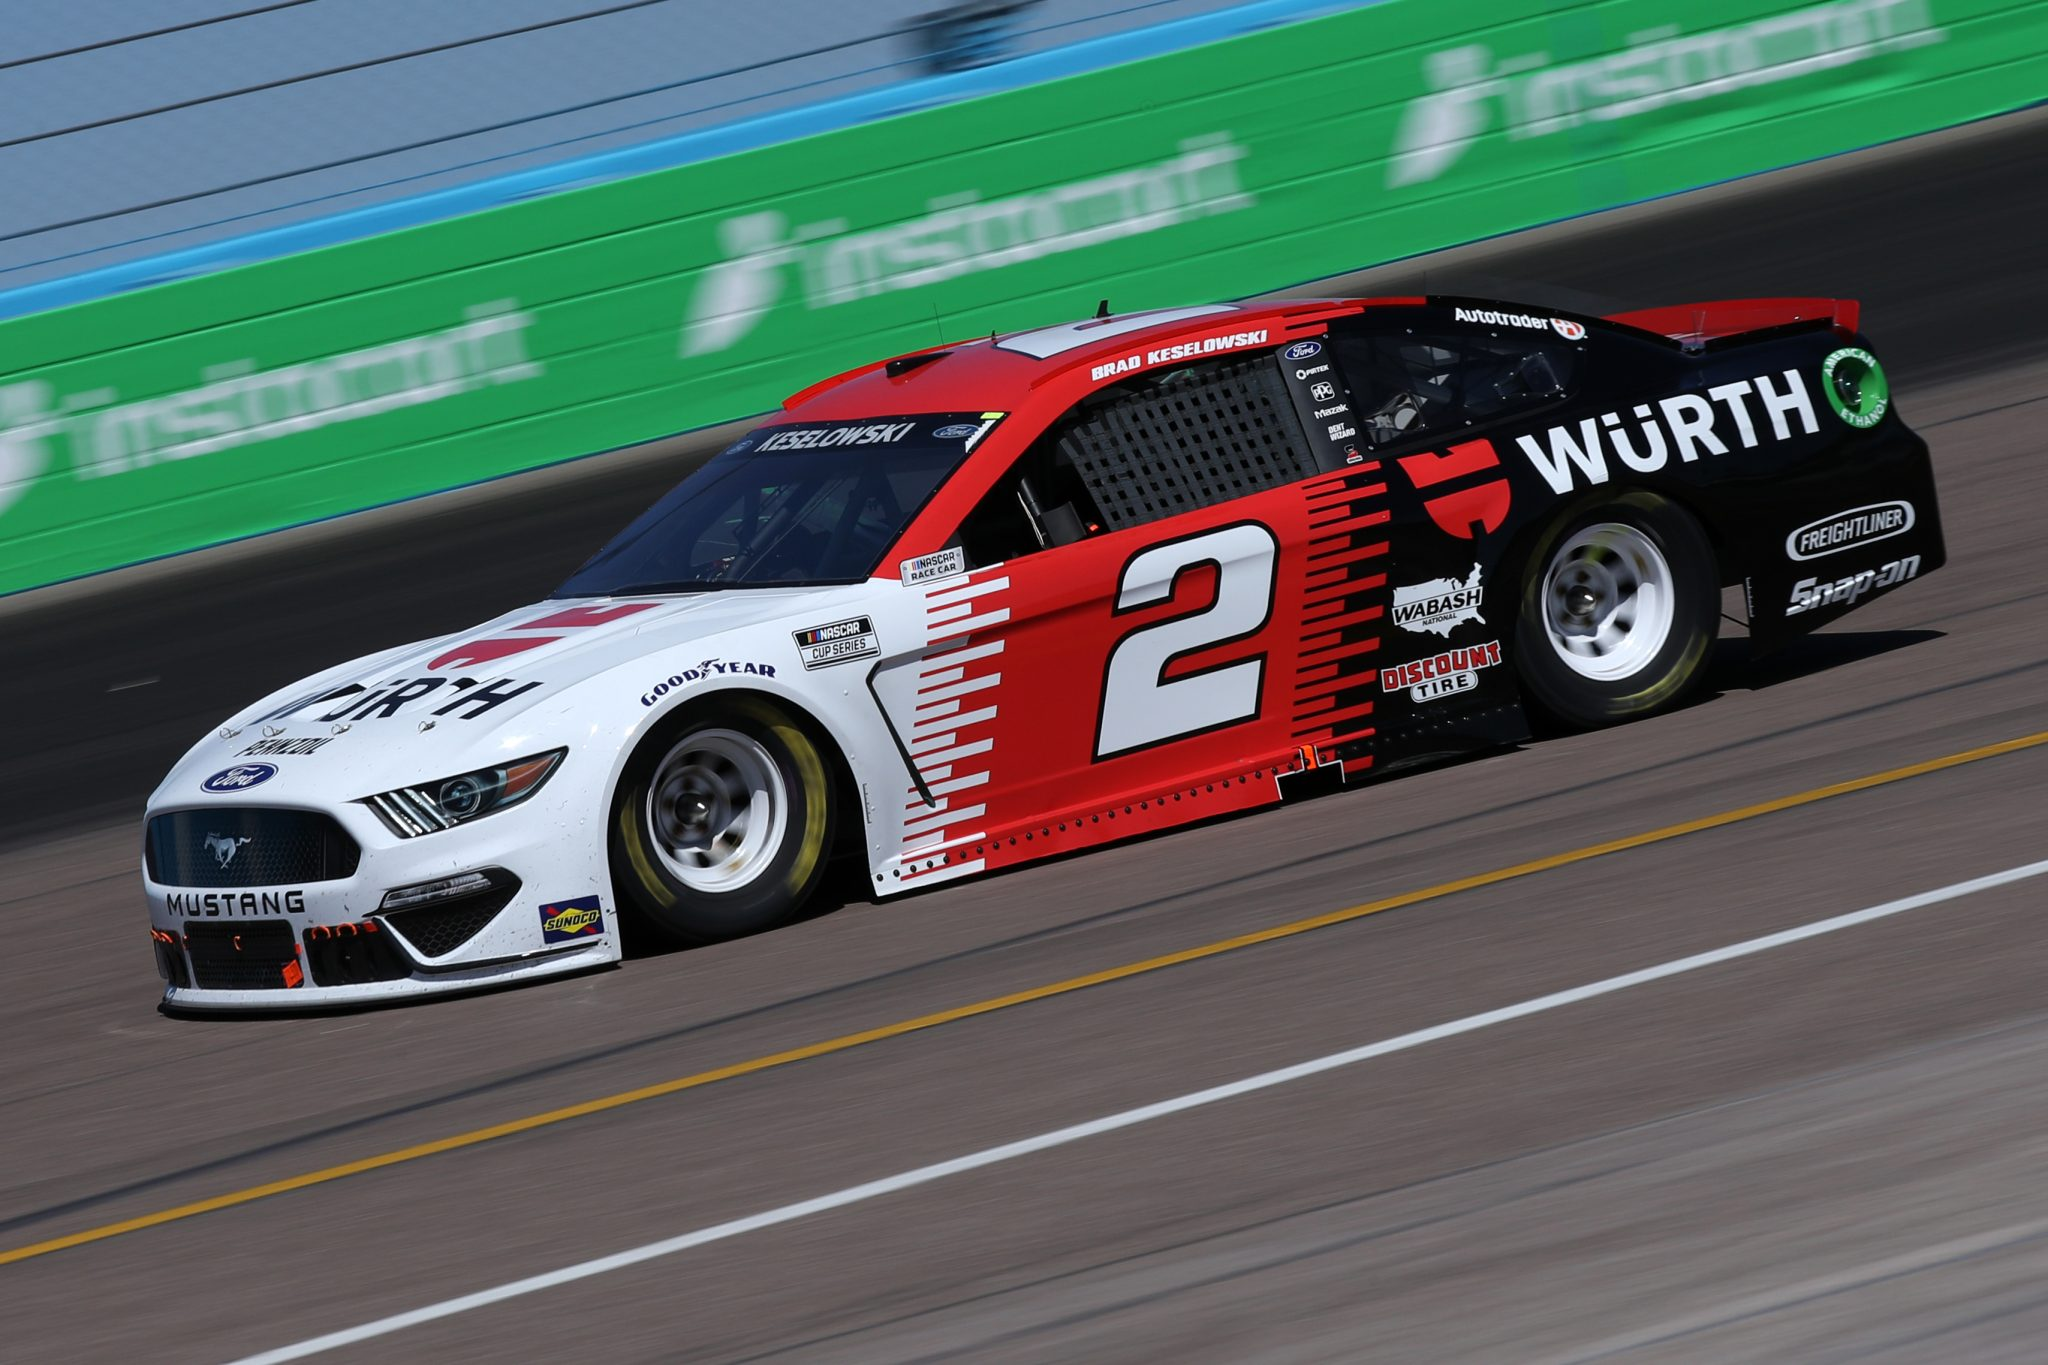 AVONDALE, ARIZONA - MARCH 14: Brad Keselowski, driver of the #2 Wurth Ford, drives during the NASCAR Cup Series Instacart 500 at Phoenix Raceway on March 14, 2021 in Avondale, Arizona. (Photo by Sean Gardner/Getty Images) | Getty Images